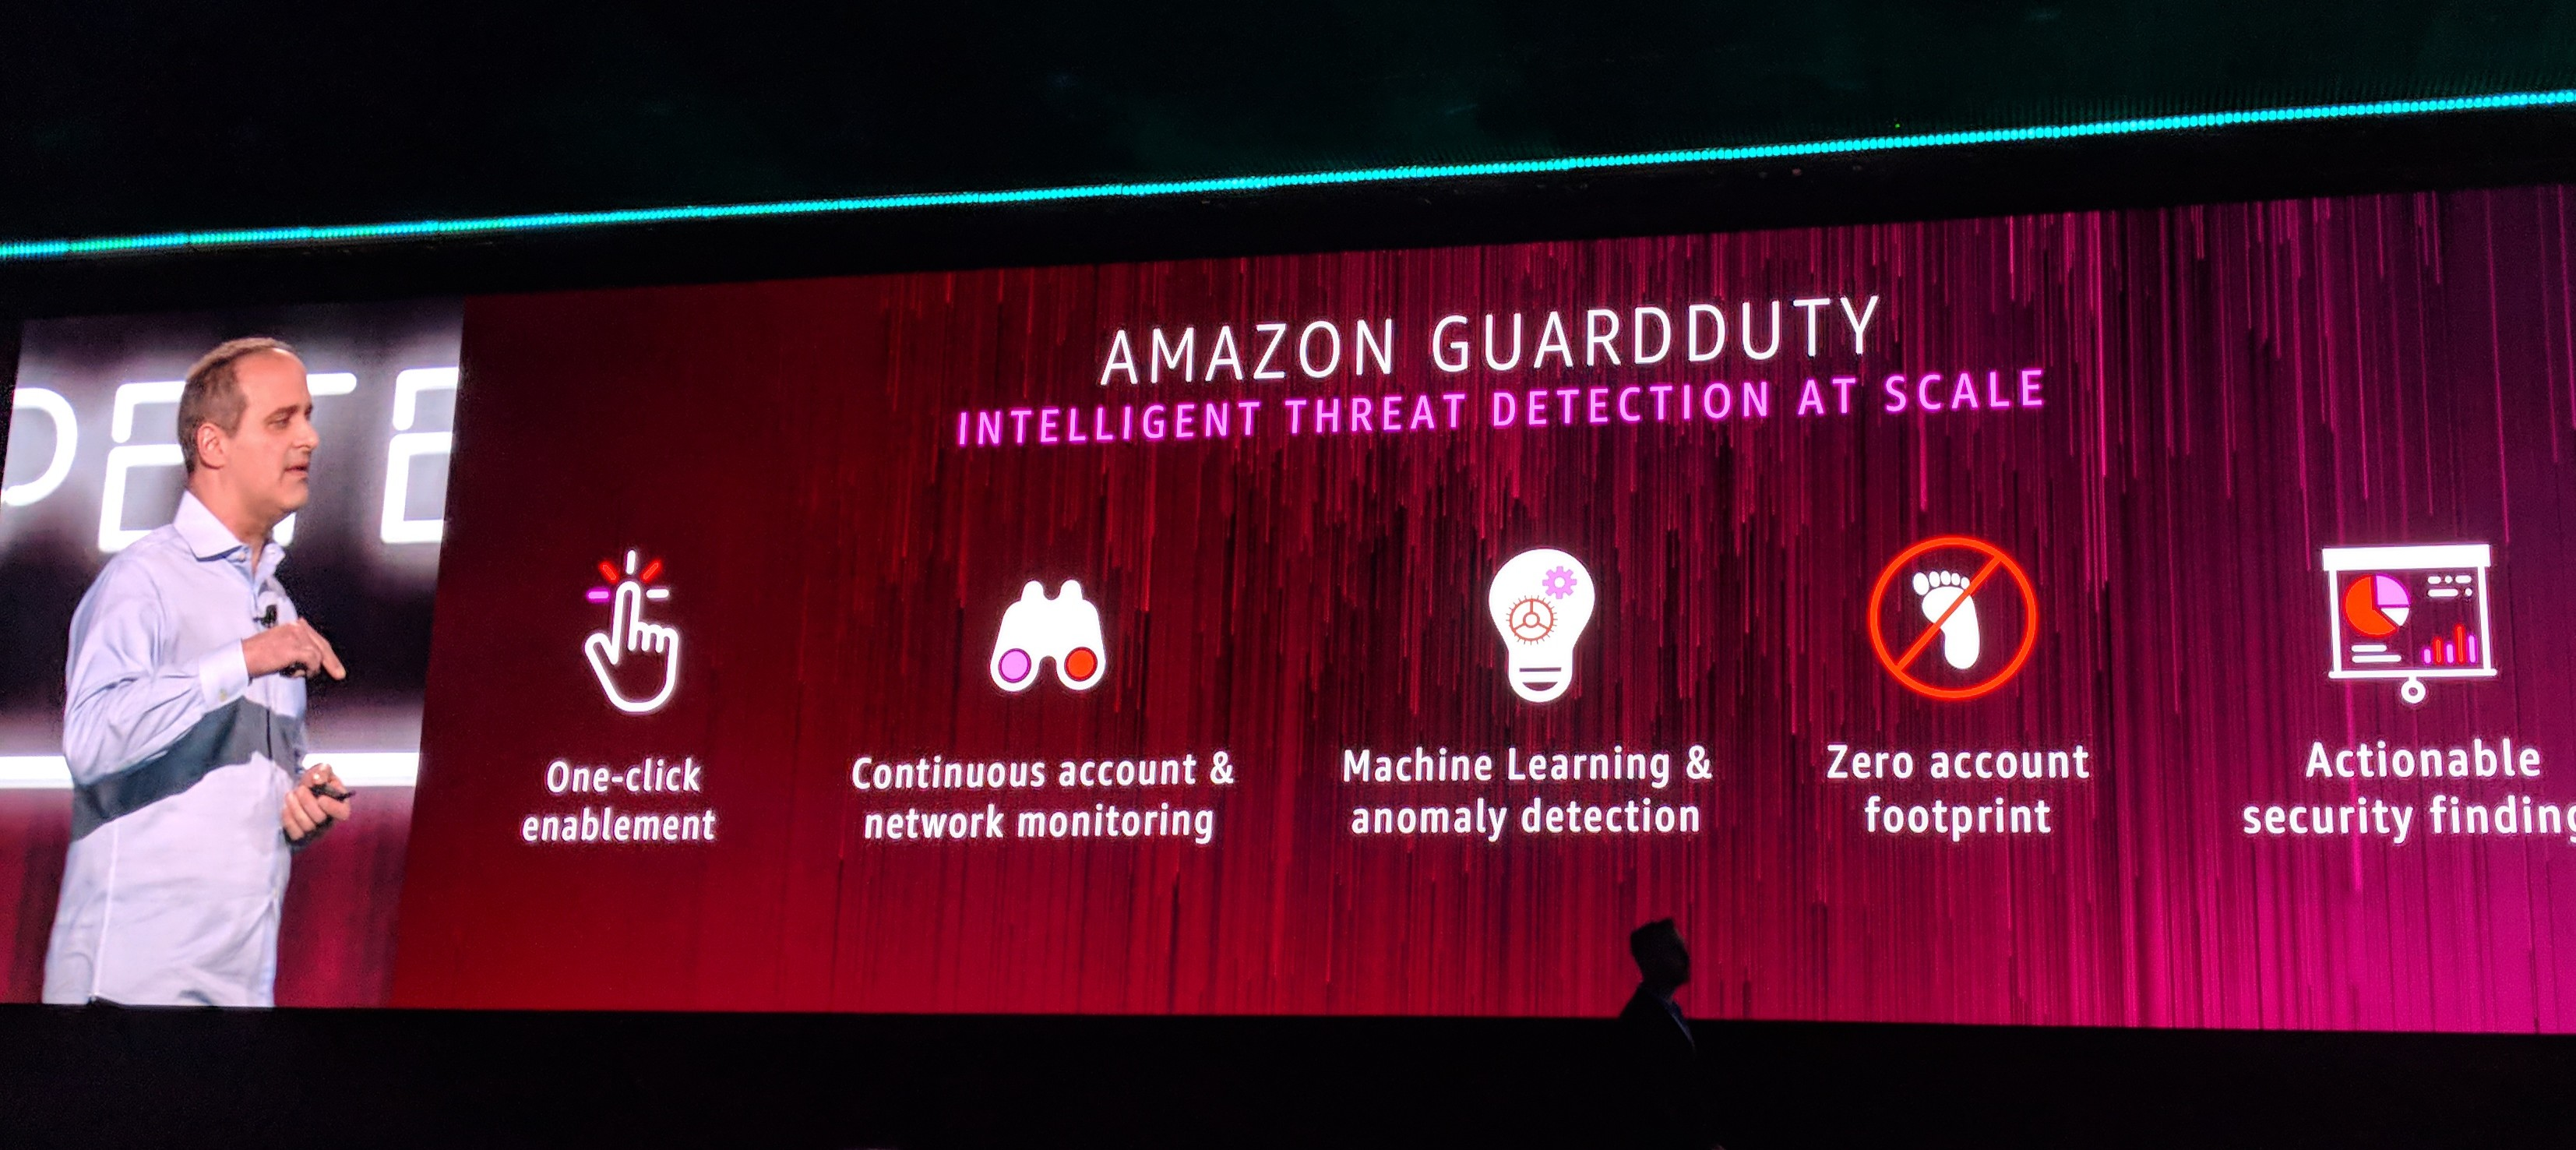 AWS launches GuardDuty, its new intelligent threat detection